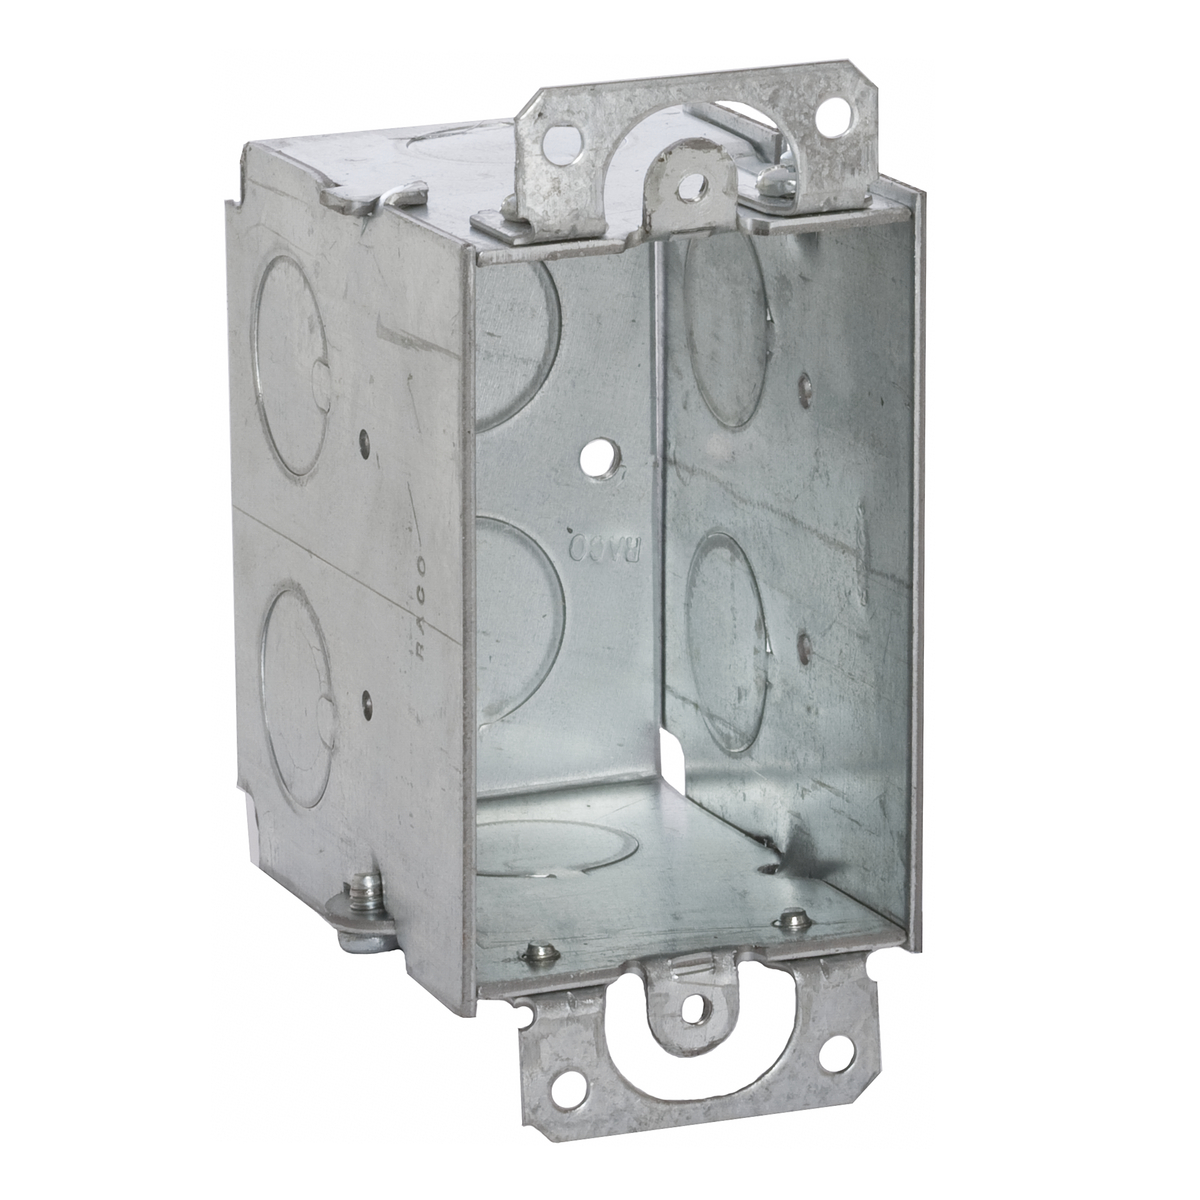 Hubbell-Raco 560 Switch Box